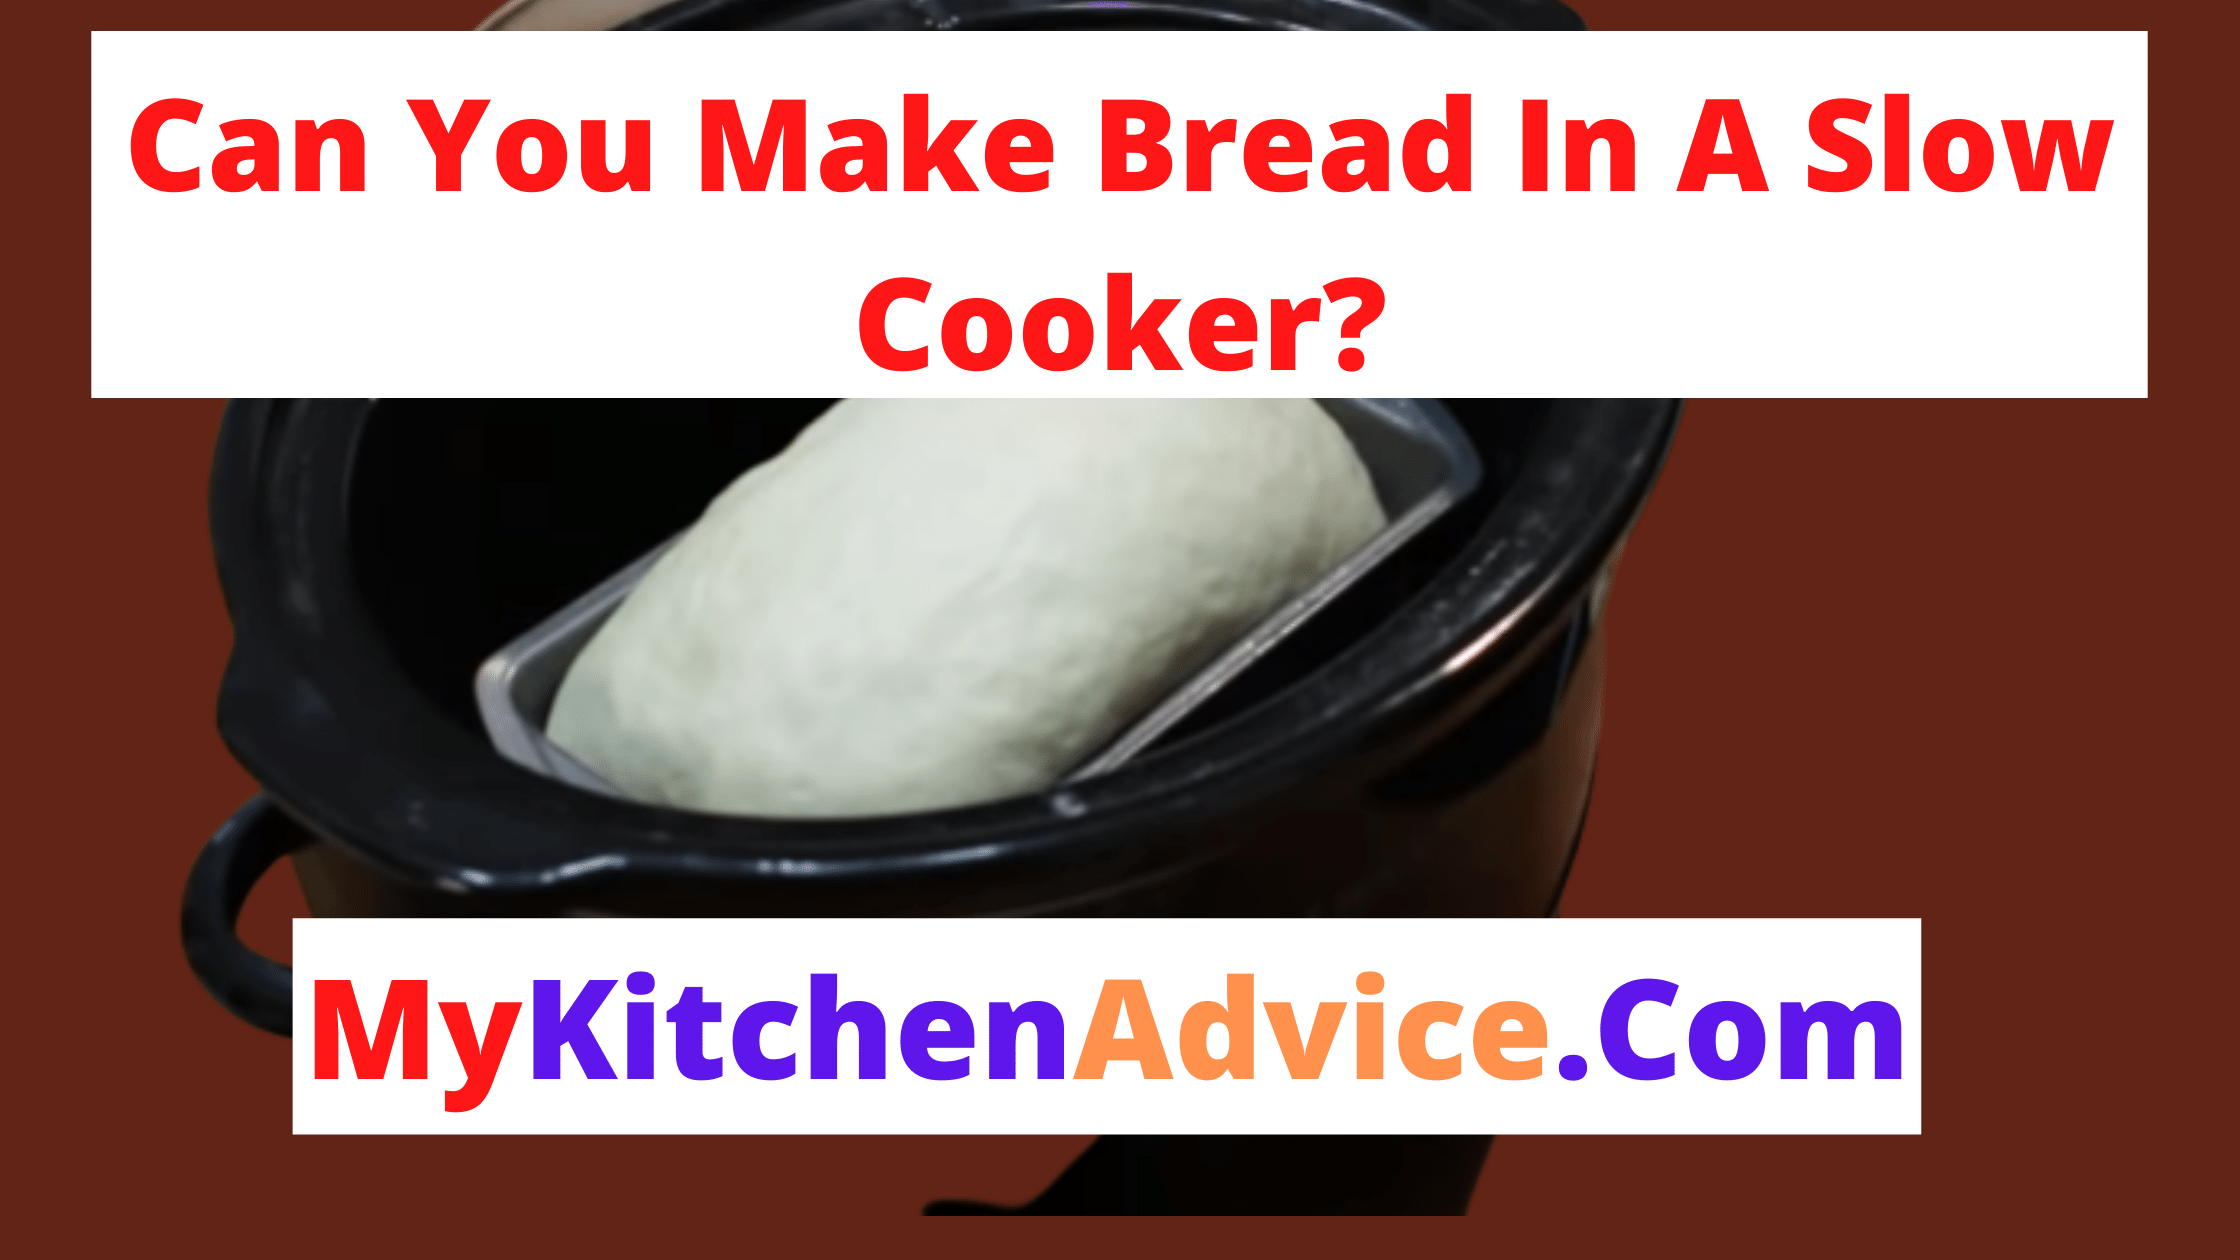 Can You Make Bread In A Slow Cooker